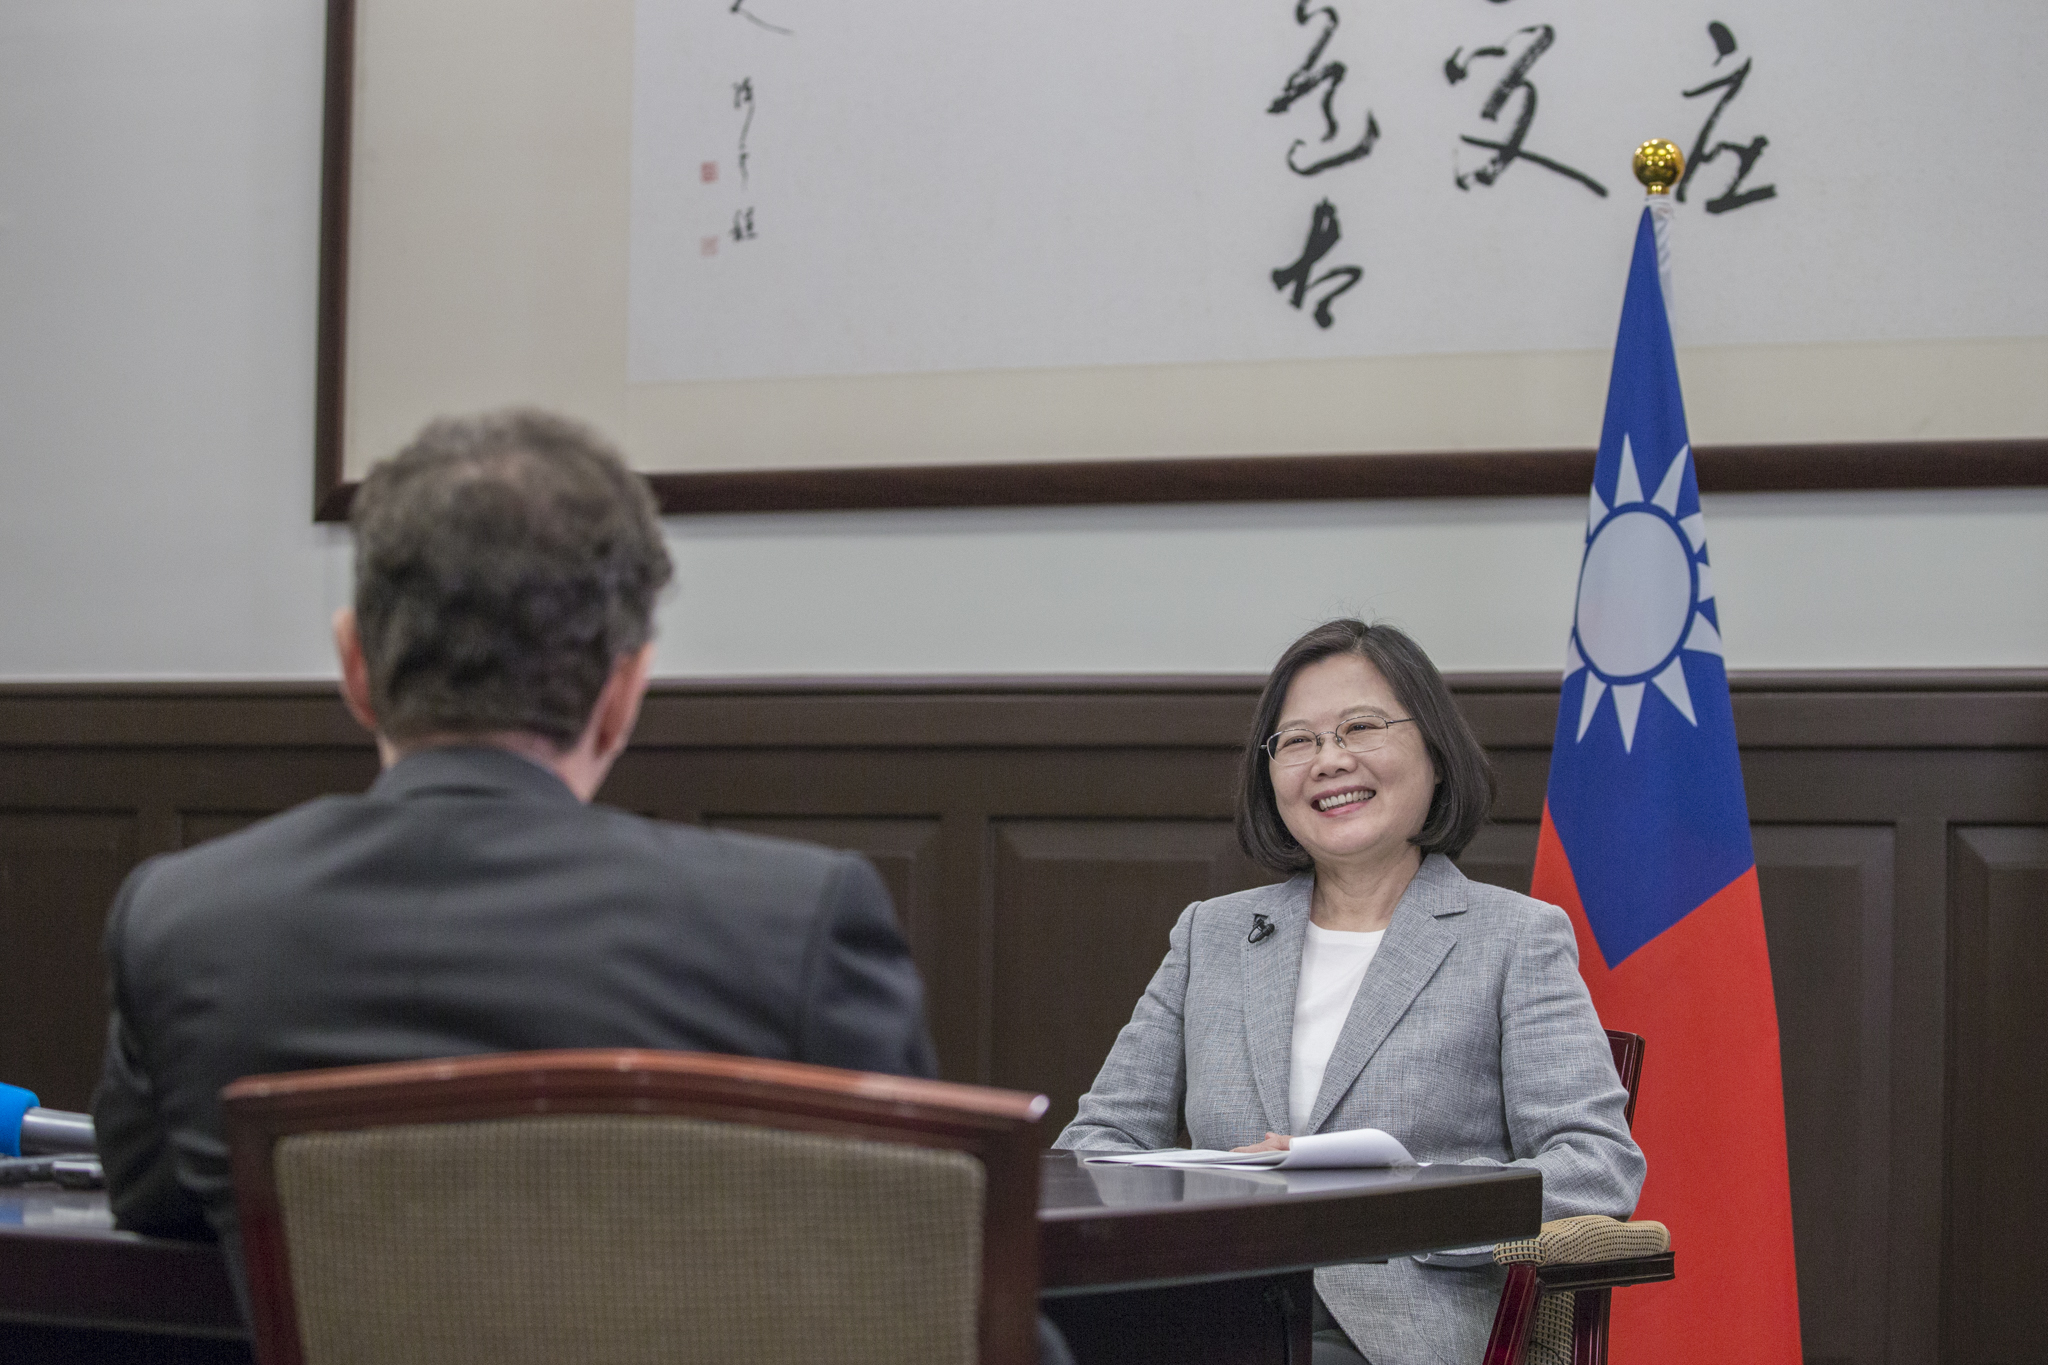 New Southbound Policy。President Tsai Ing-wen calls on the international community to stand as one in protecting universal values during an interview at the Office of the President June 25 in Taipei City. (Courtesy of Office of the President)